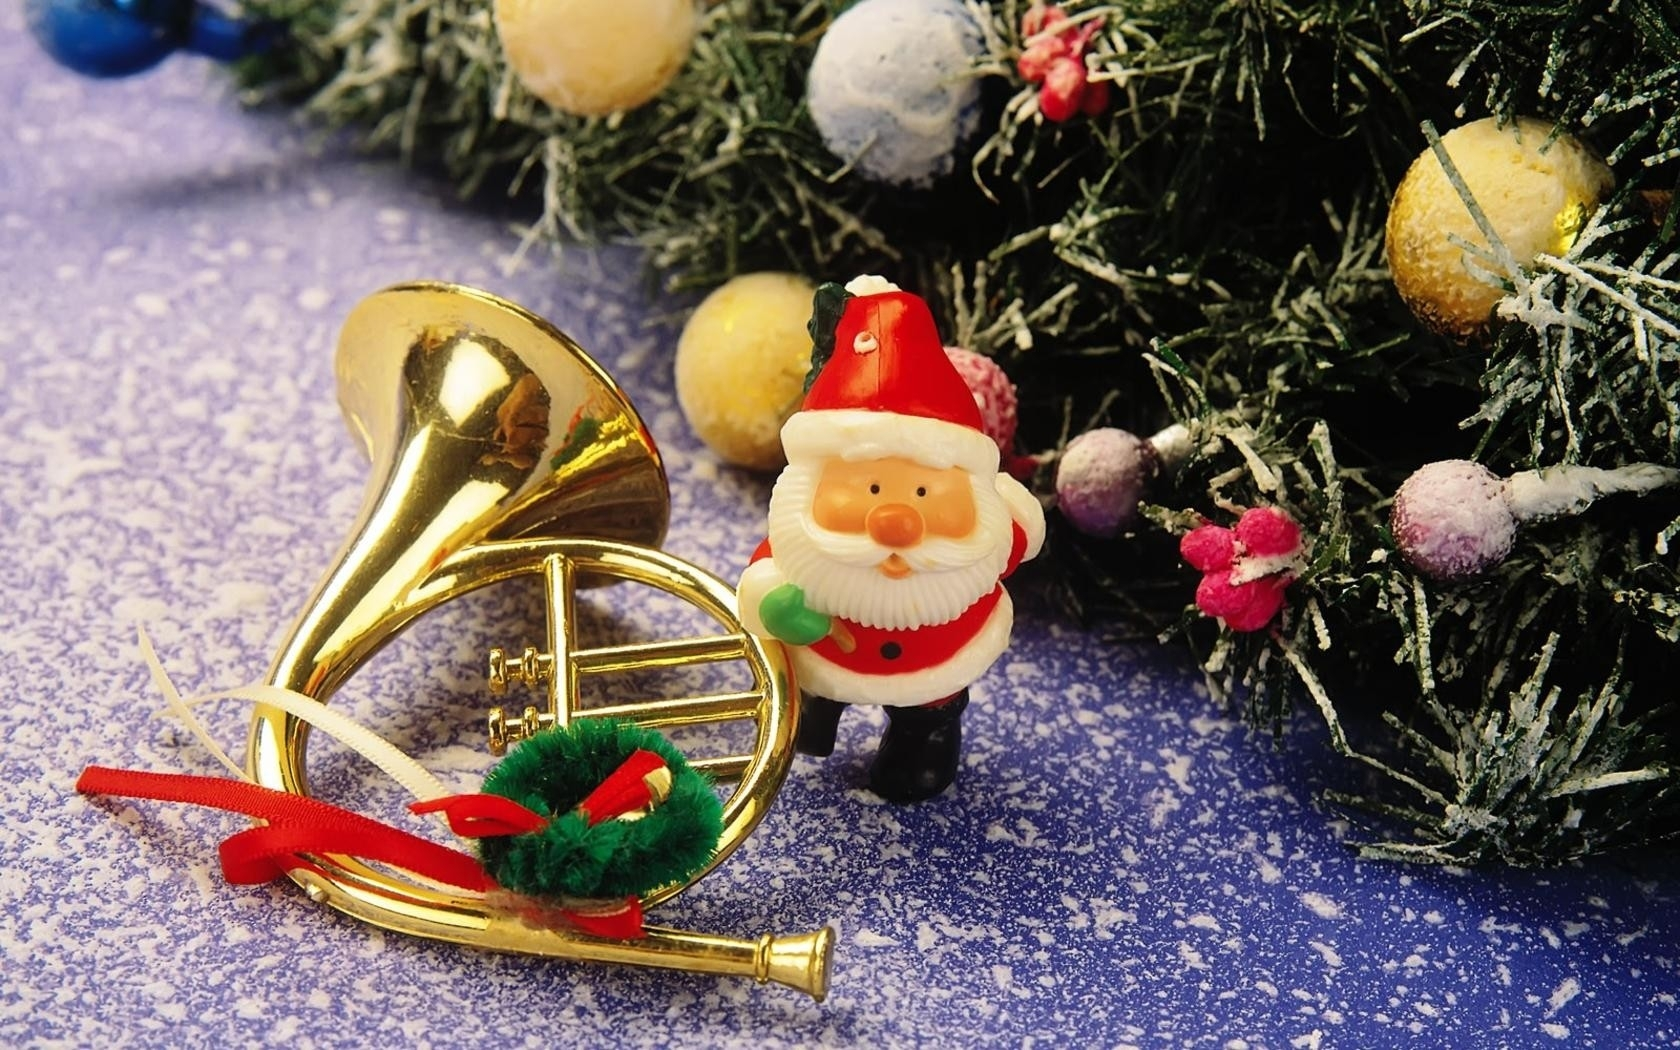 26272 download wallpaper Holidays, New Year, Santa Claus, Christmas, Xmas screensavers and pictures for free